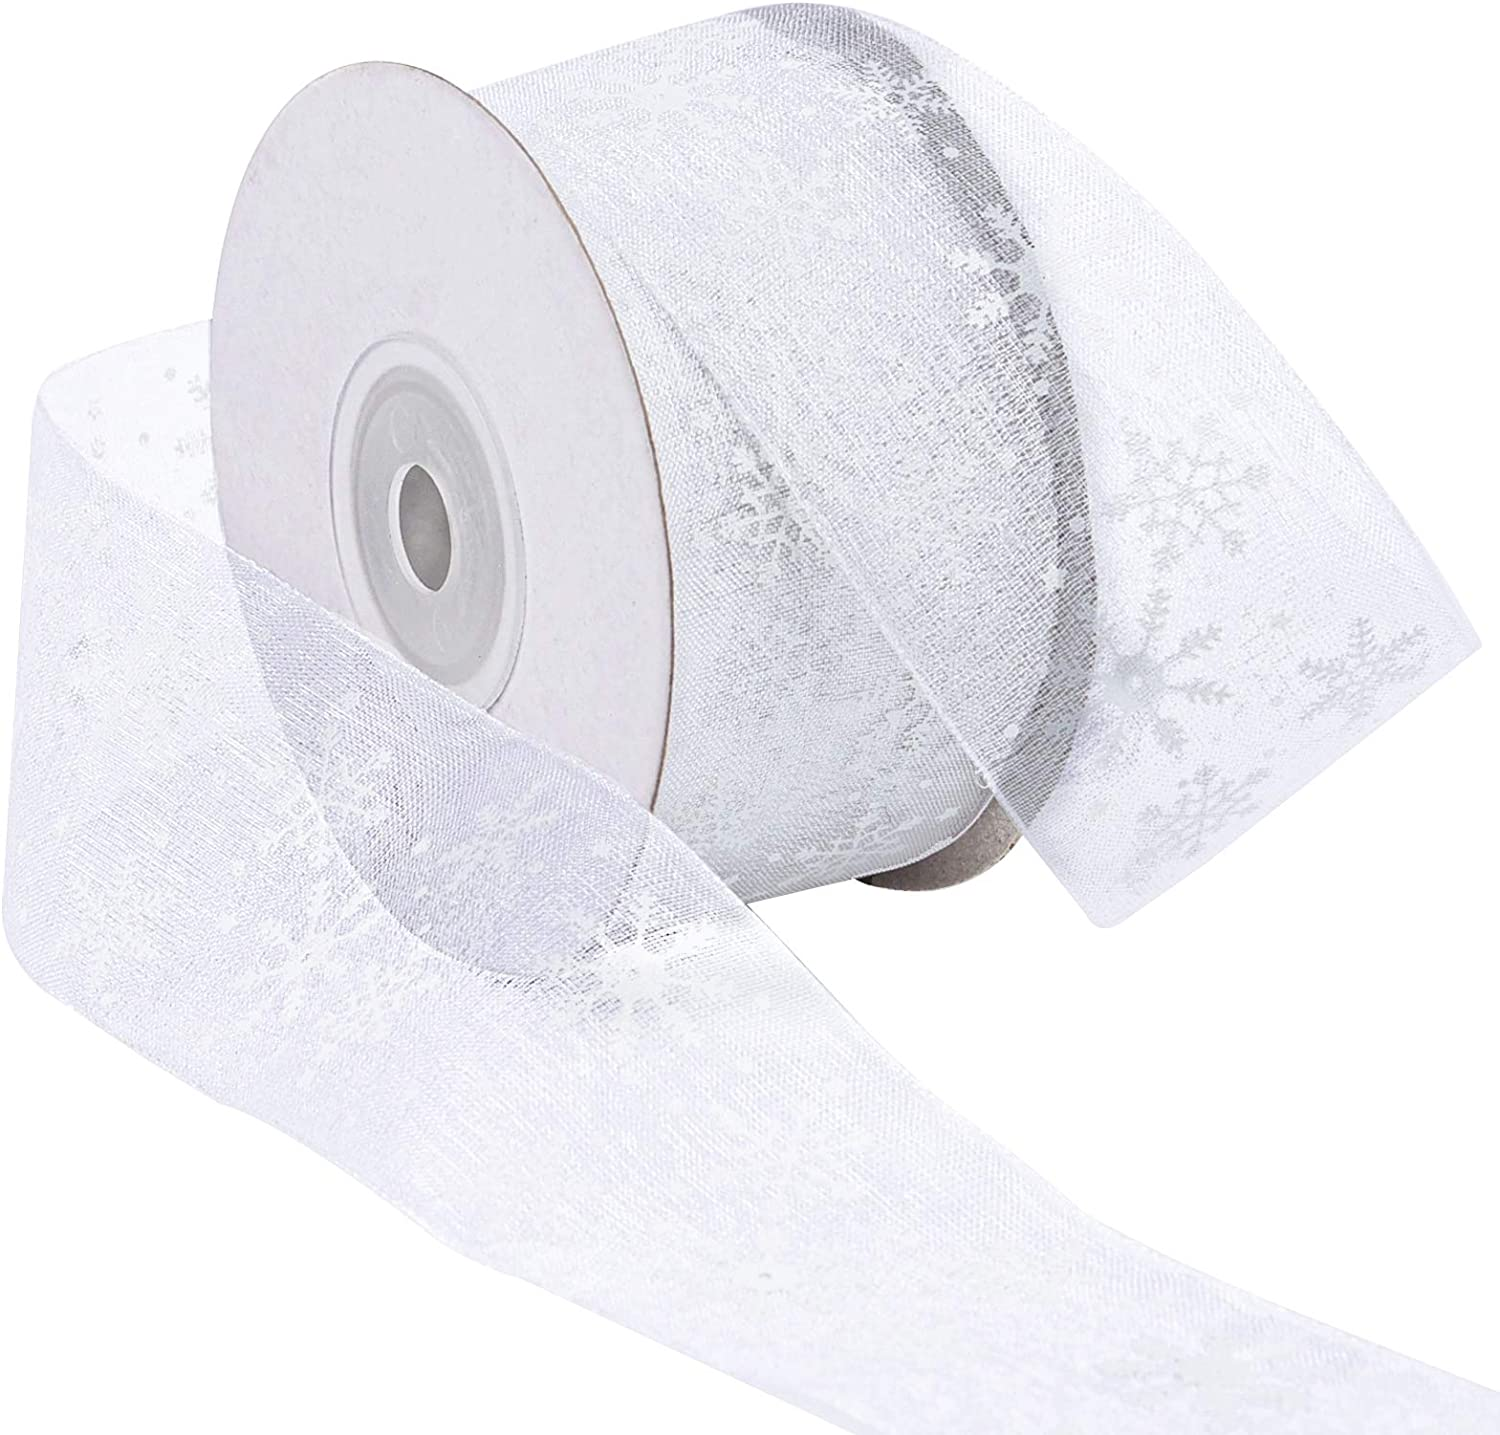 Livder 1.6 Inch Wide Christmas Snowflake Sheer Organza Ribbon for Xmas Gift Wrapping, Tree, Wreath, Party Decoration, 25 Yards (White)